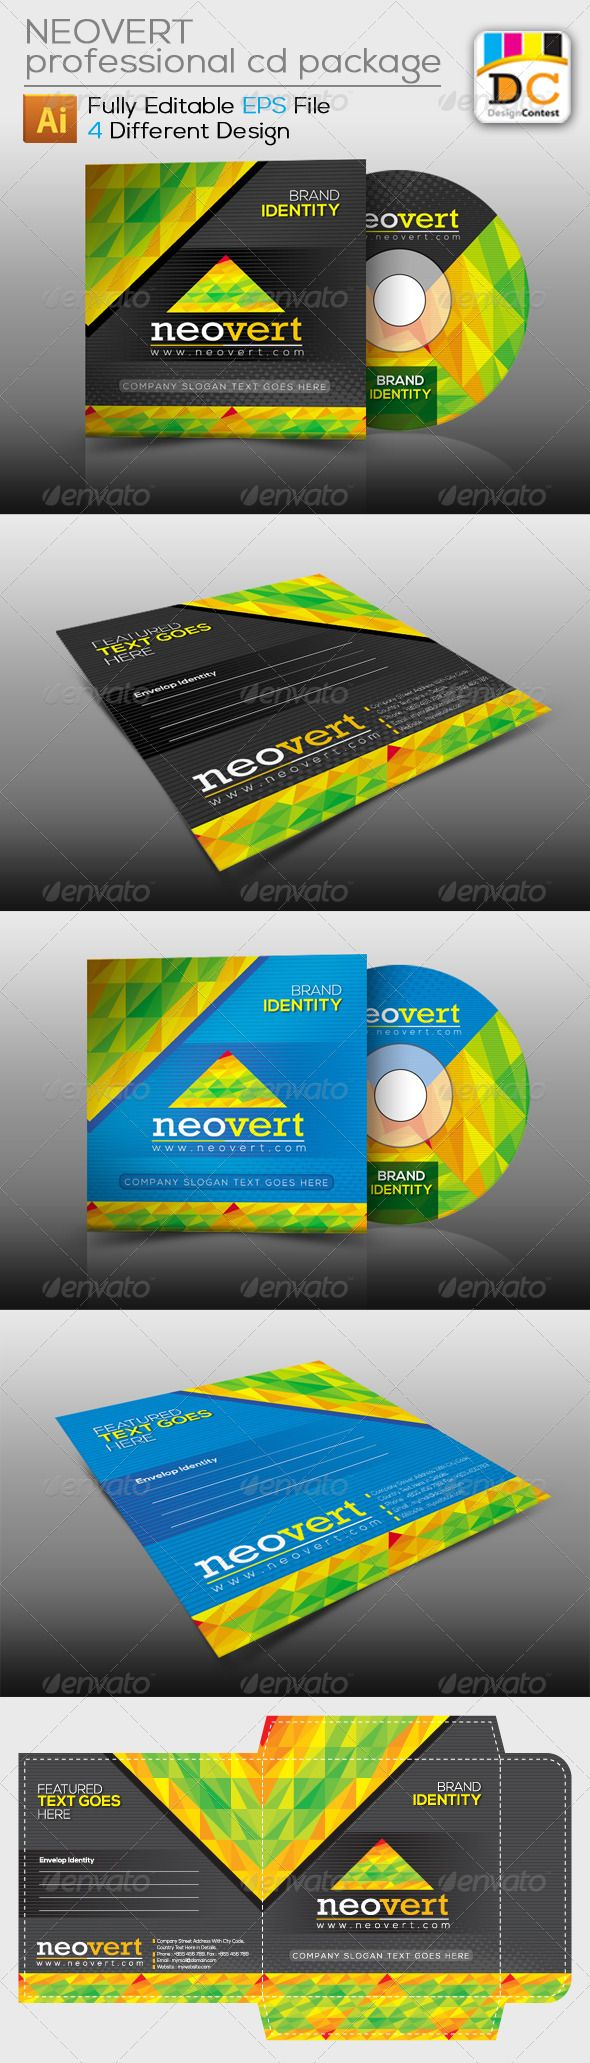 Cd box template download free vector art stock graphics amp images - Neovert_cd Sleeve Label Sticker 4139490